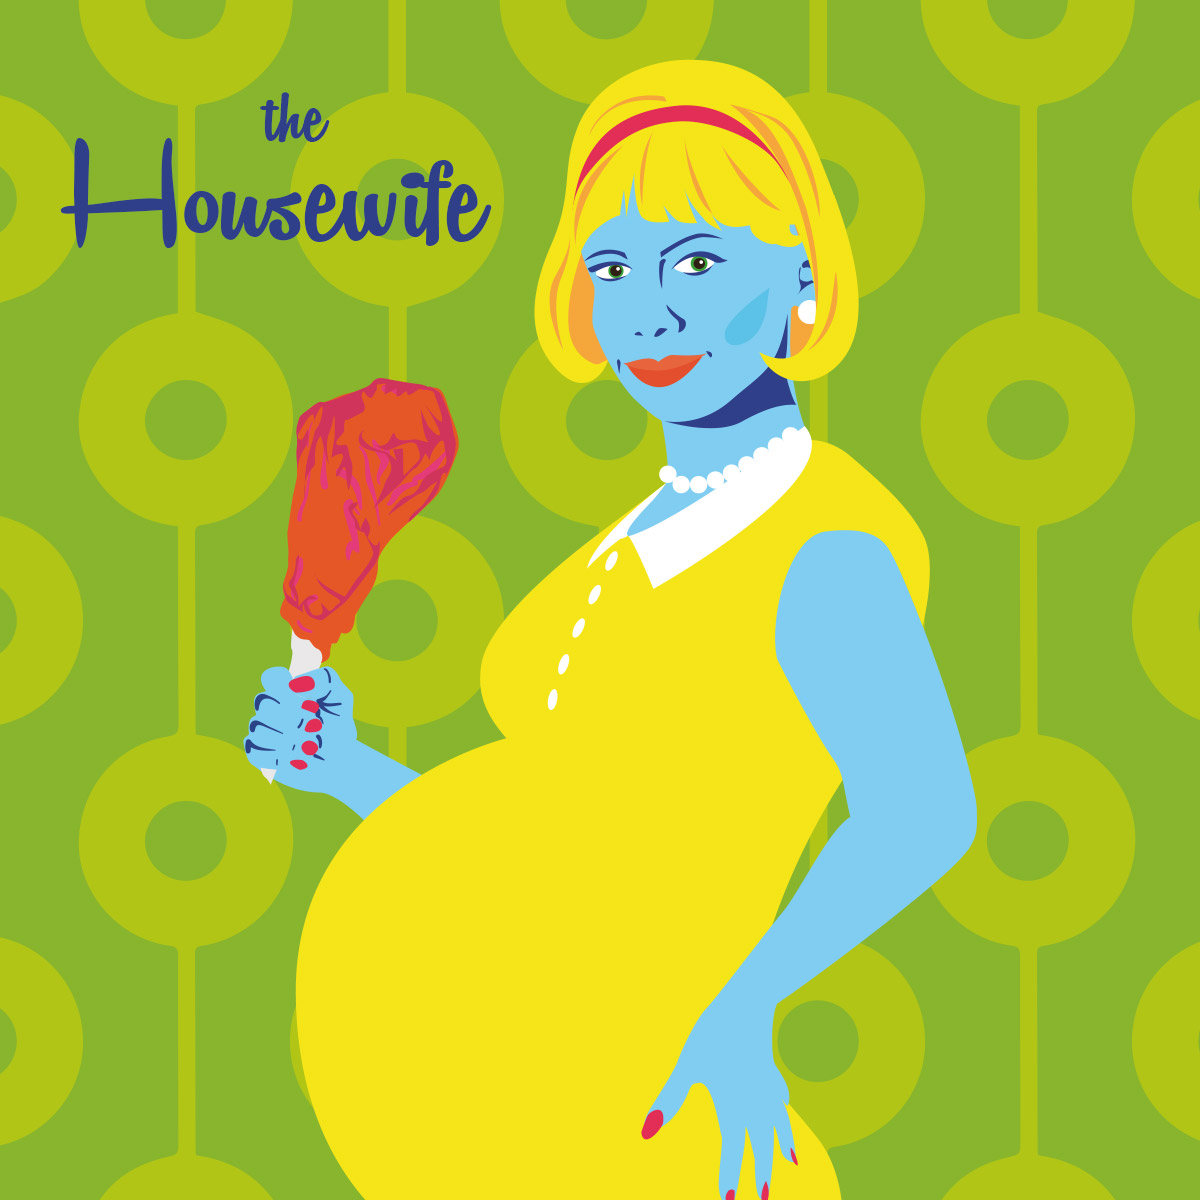 WM_Housewife